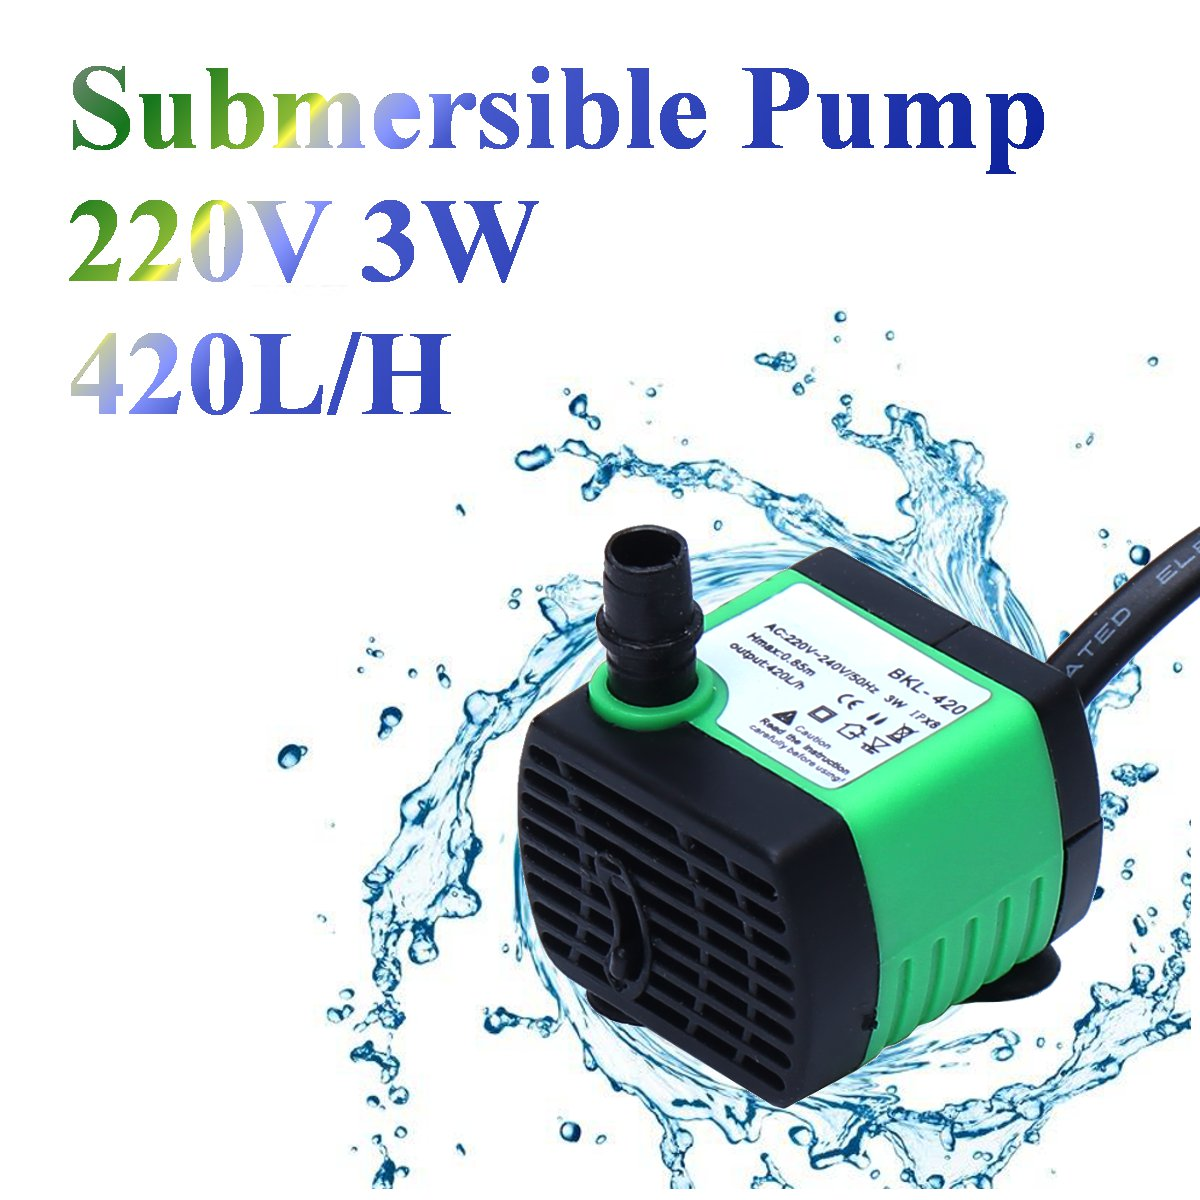 220V 450L/H Submersible Pump Aquarium Fish Tank Fountain Water Hydroponic